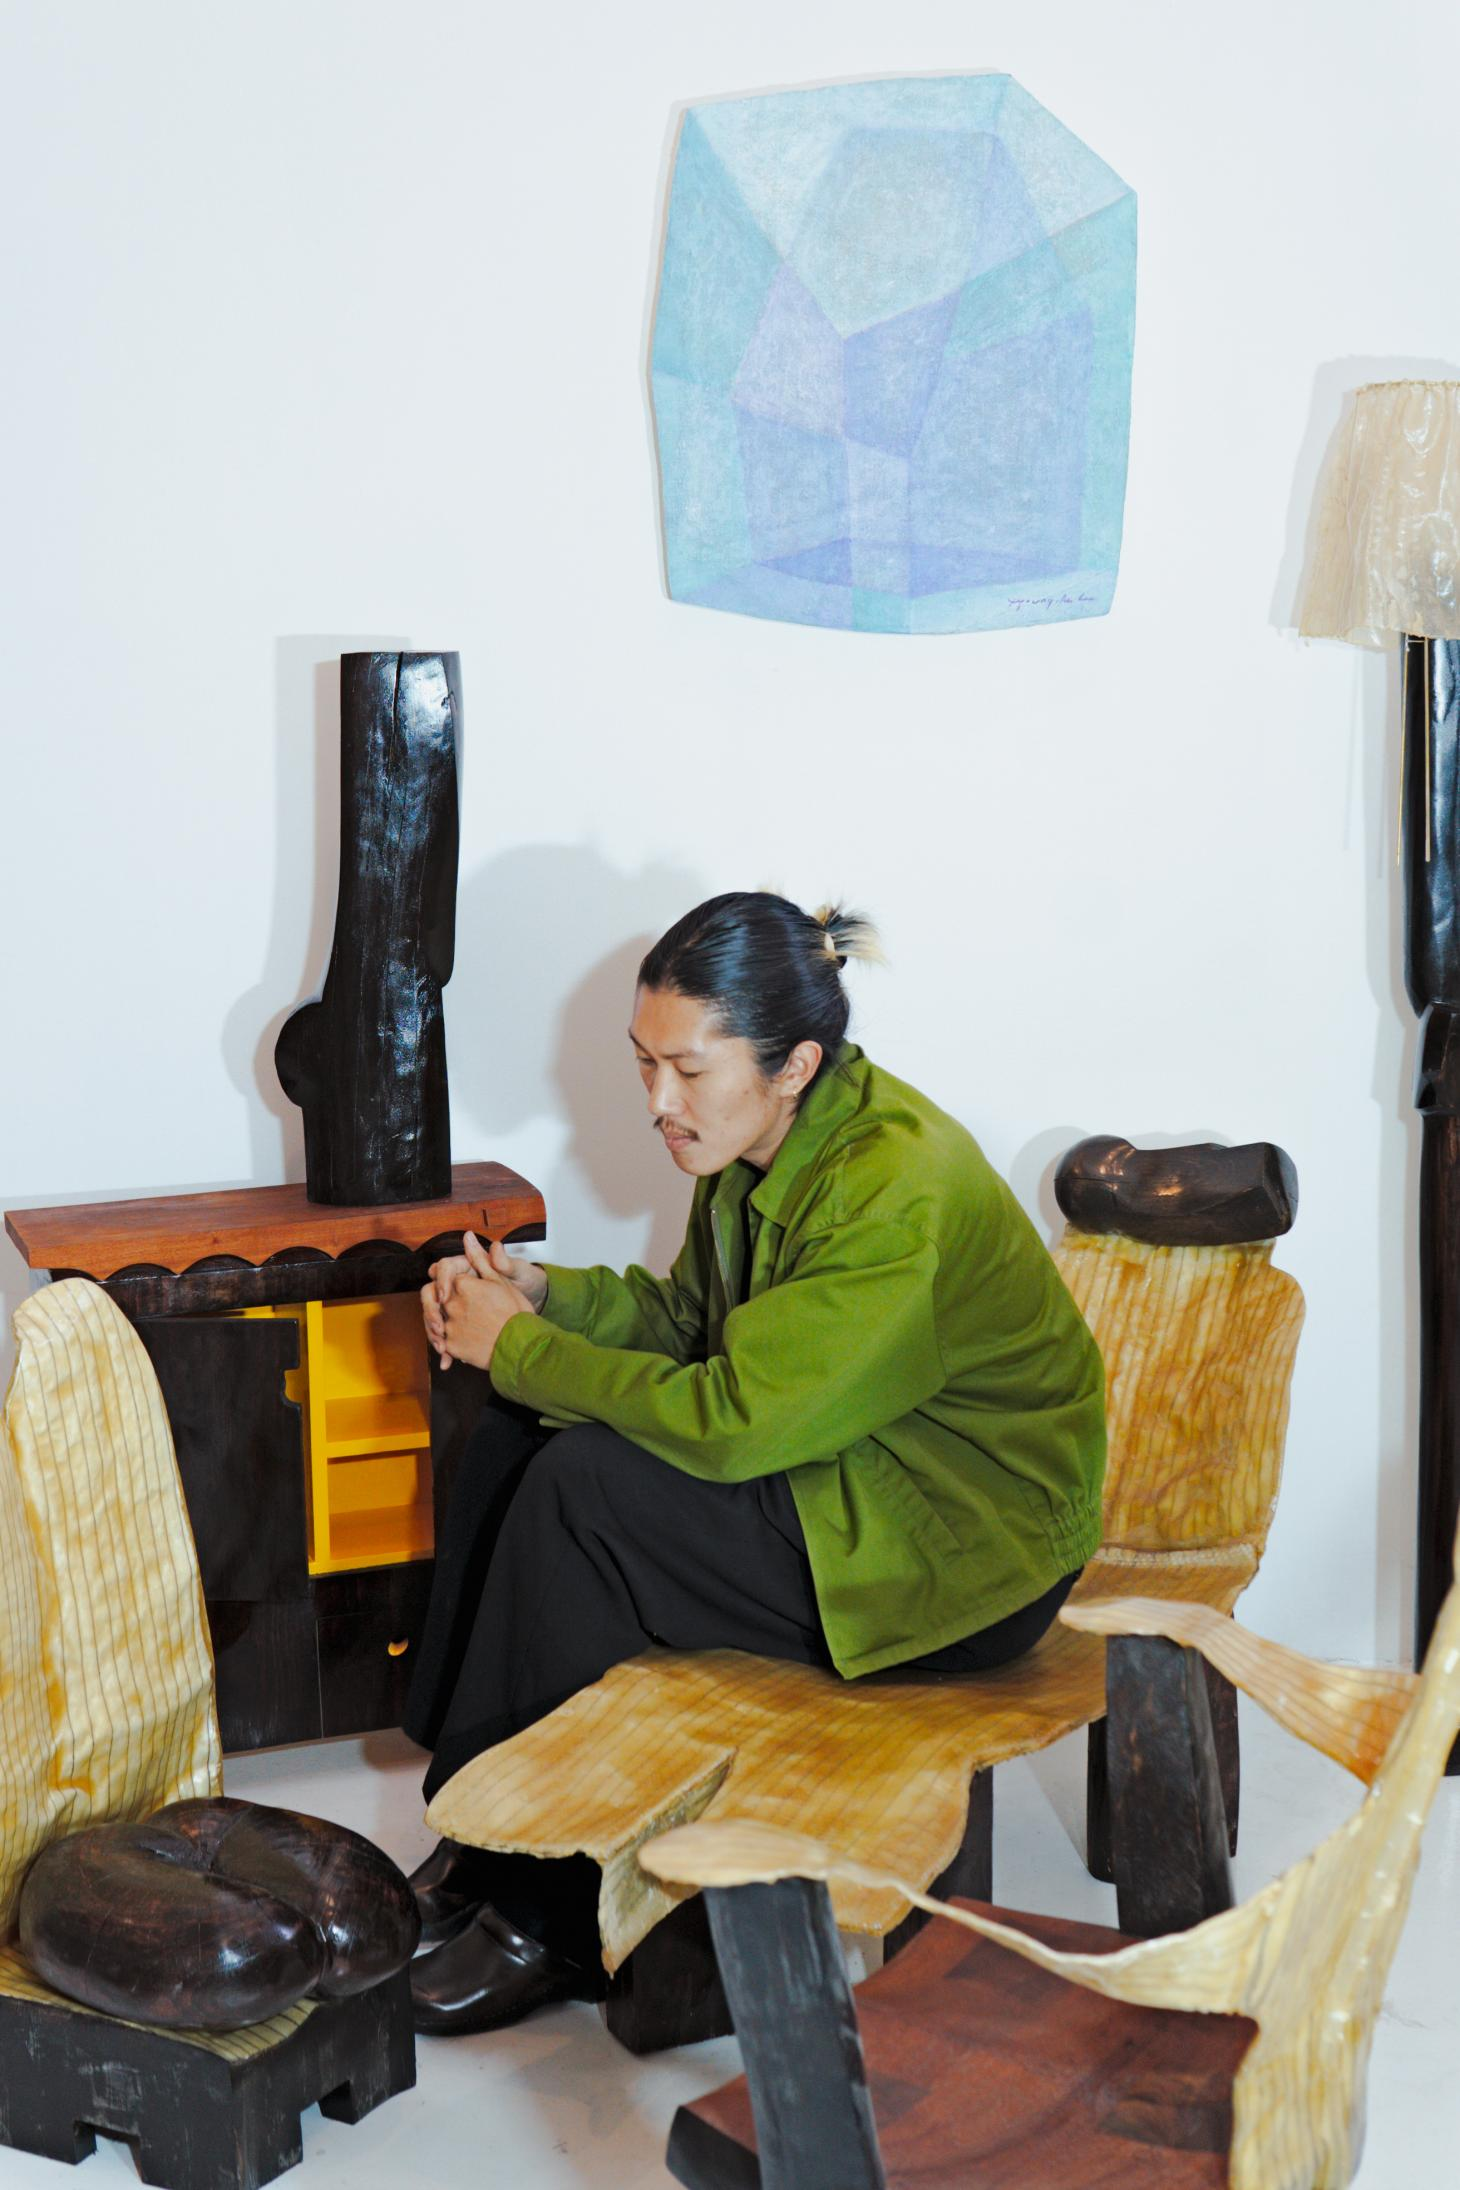 Designer Minjae Kim in his studio surrounded by pieces from the exhibition at Marta Los Angeles including chaise longue, cabinet and wall piece in light blue